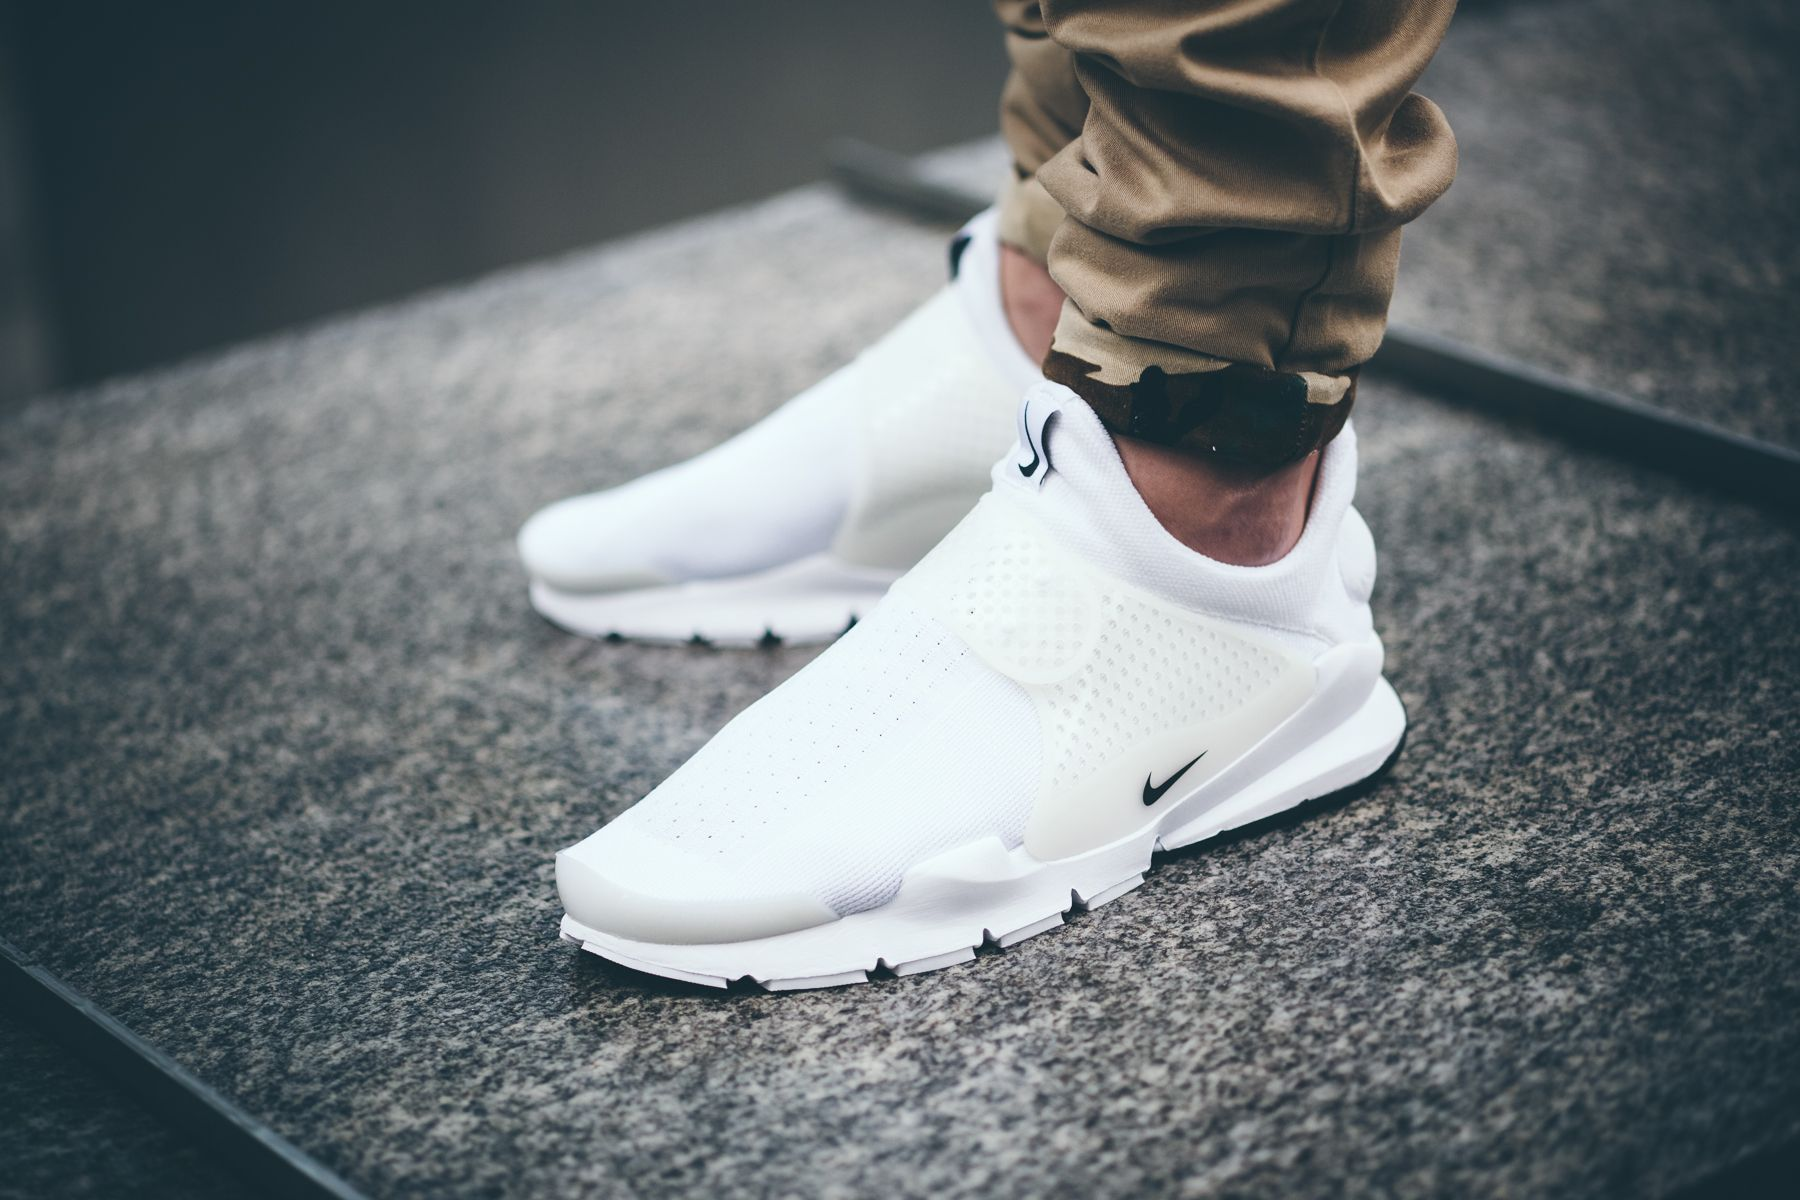 designer fashion 9e557 cd6d8 The Nike Sock Dart Independence Day edition in White is ...